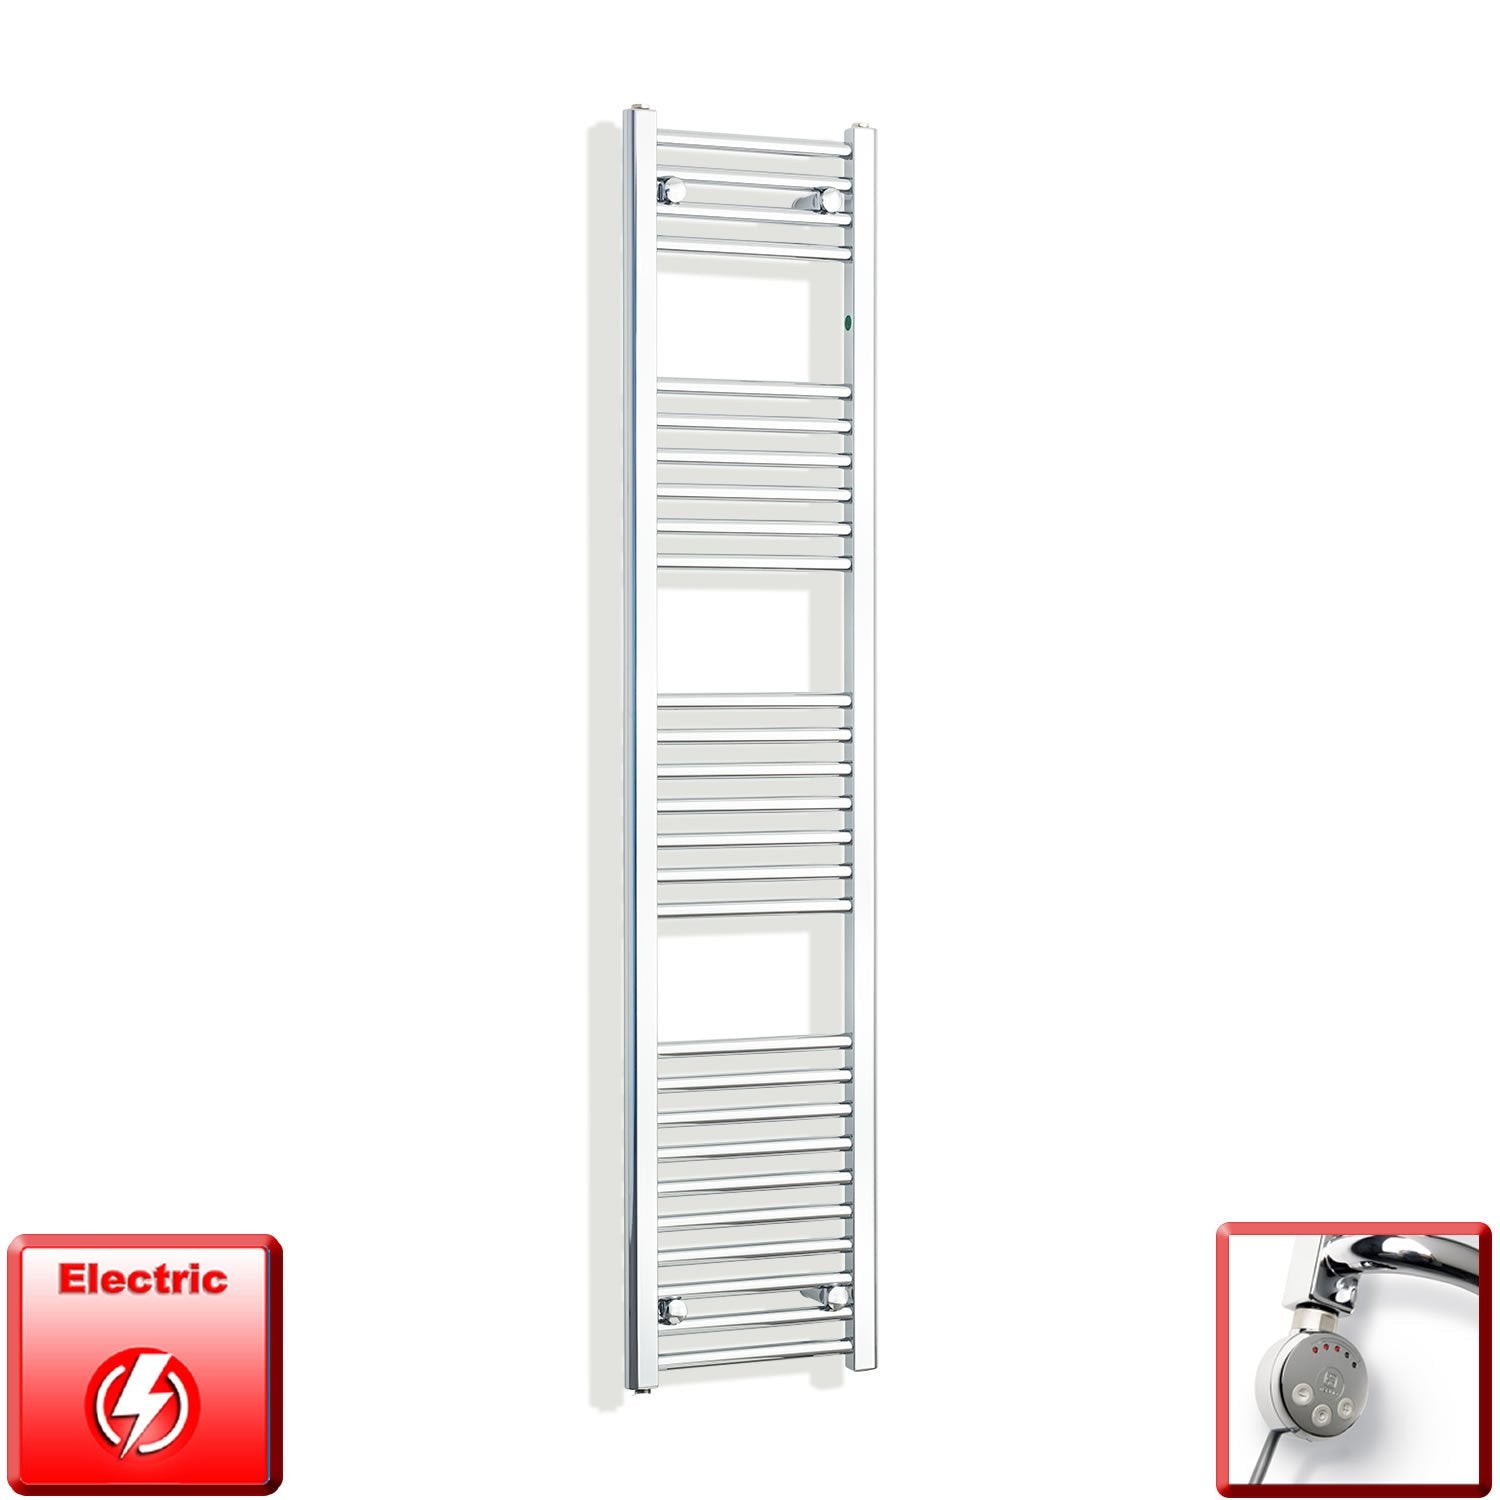 350mm Wide 1600mm High Flat Chrome Pre-Filled Electric Heated Towel Rail Radiator HTR,MEG Thermostatic Element